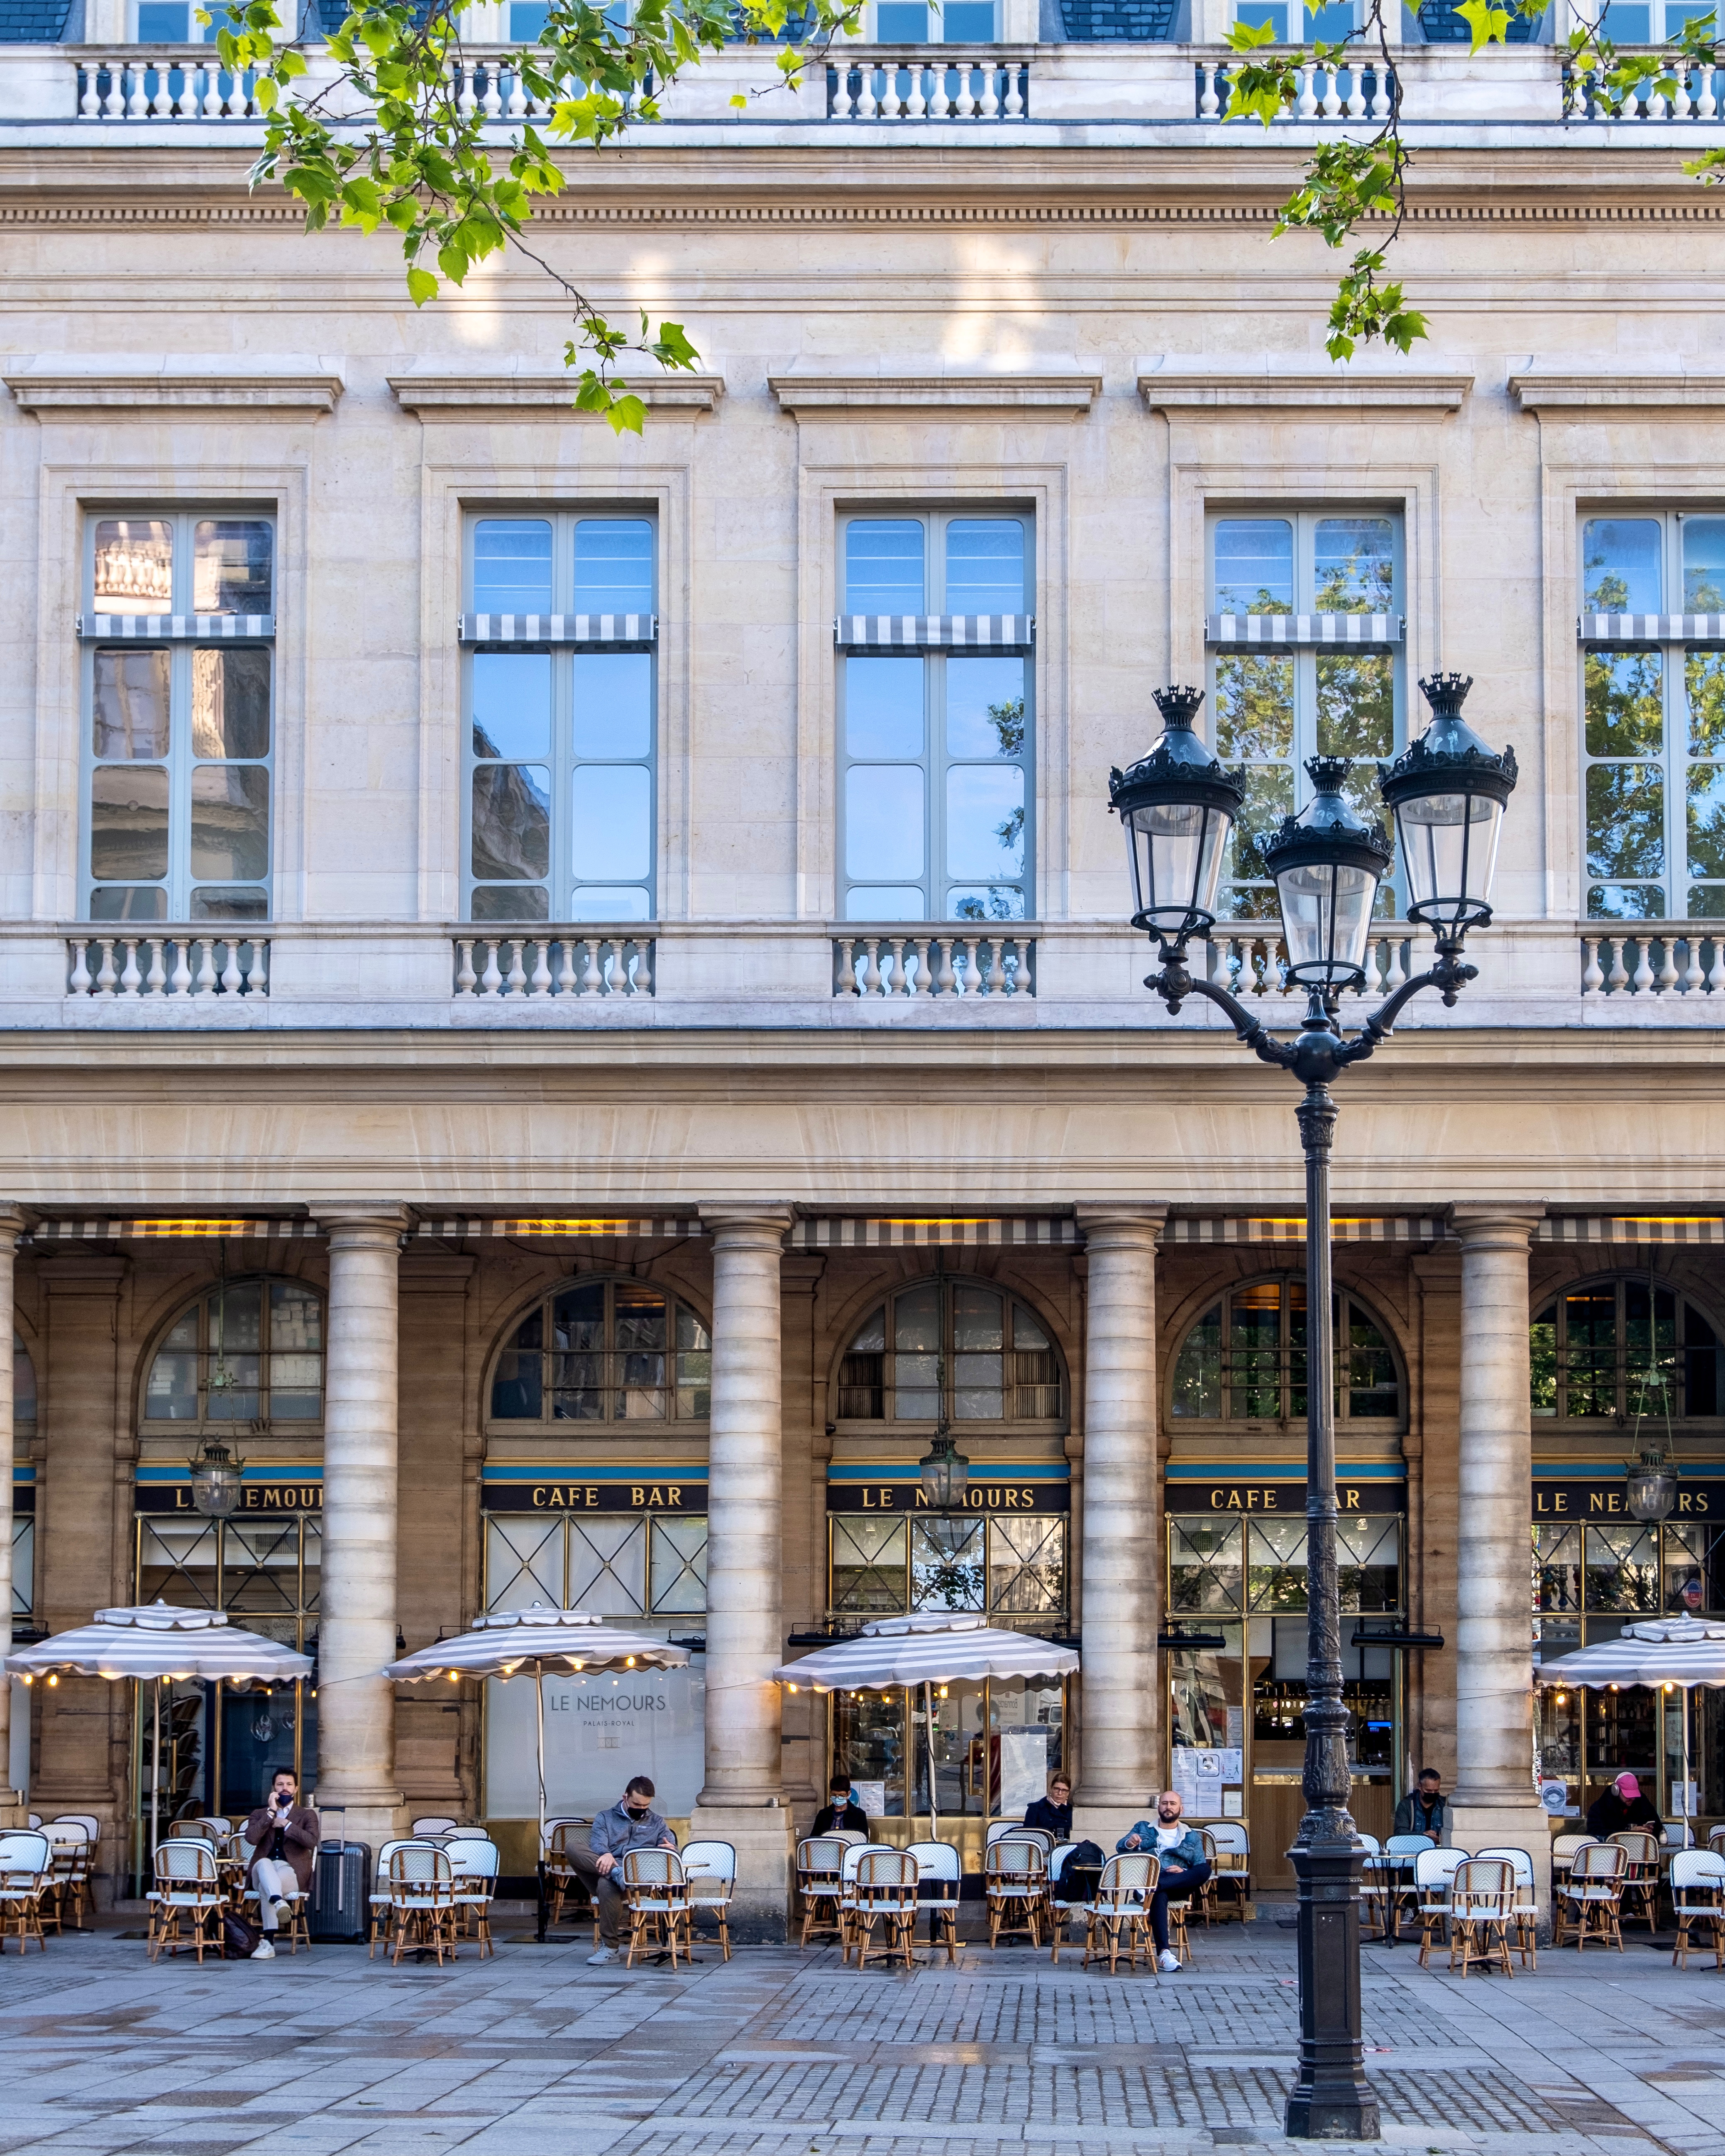 outdoor dining reopening in france